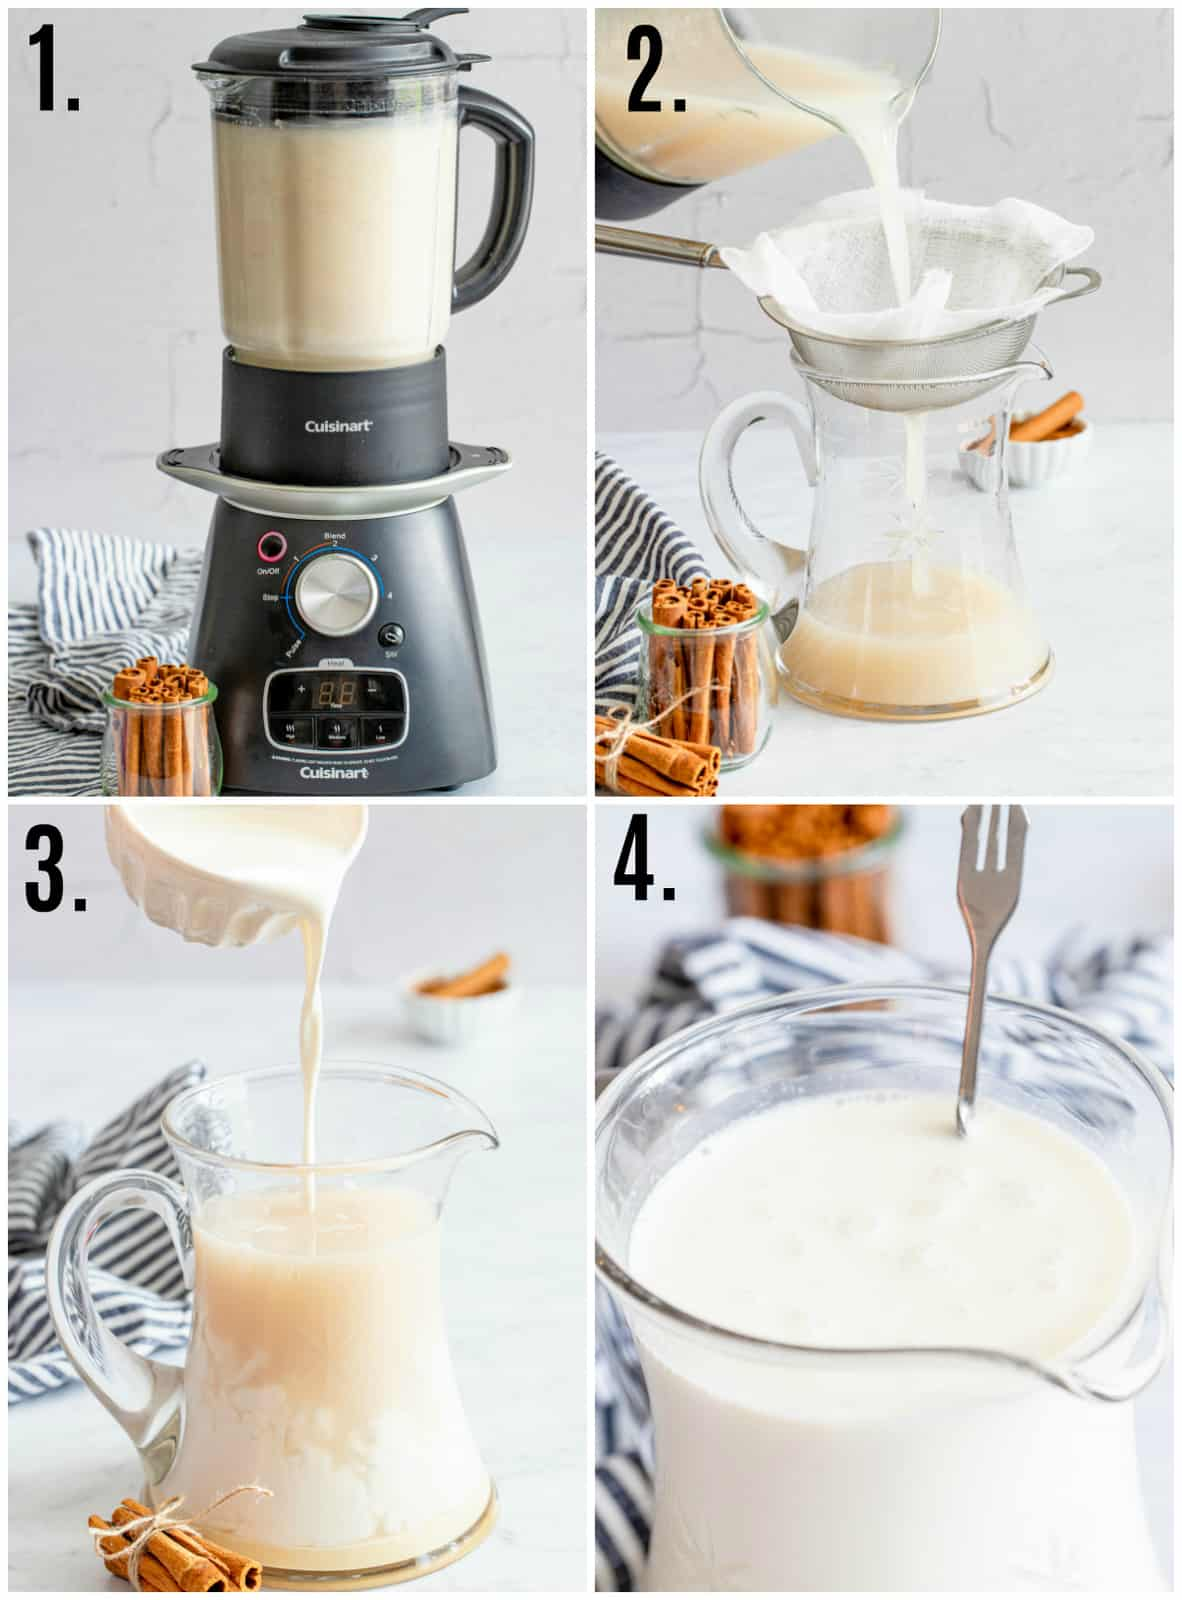 Step by step photos on how to make Horchata